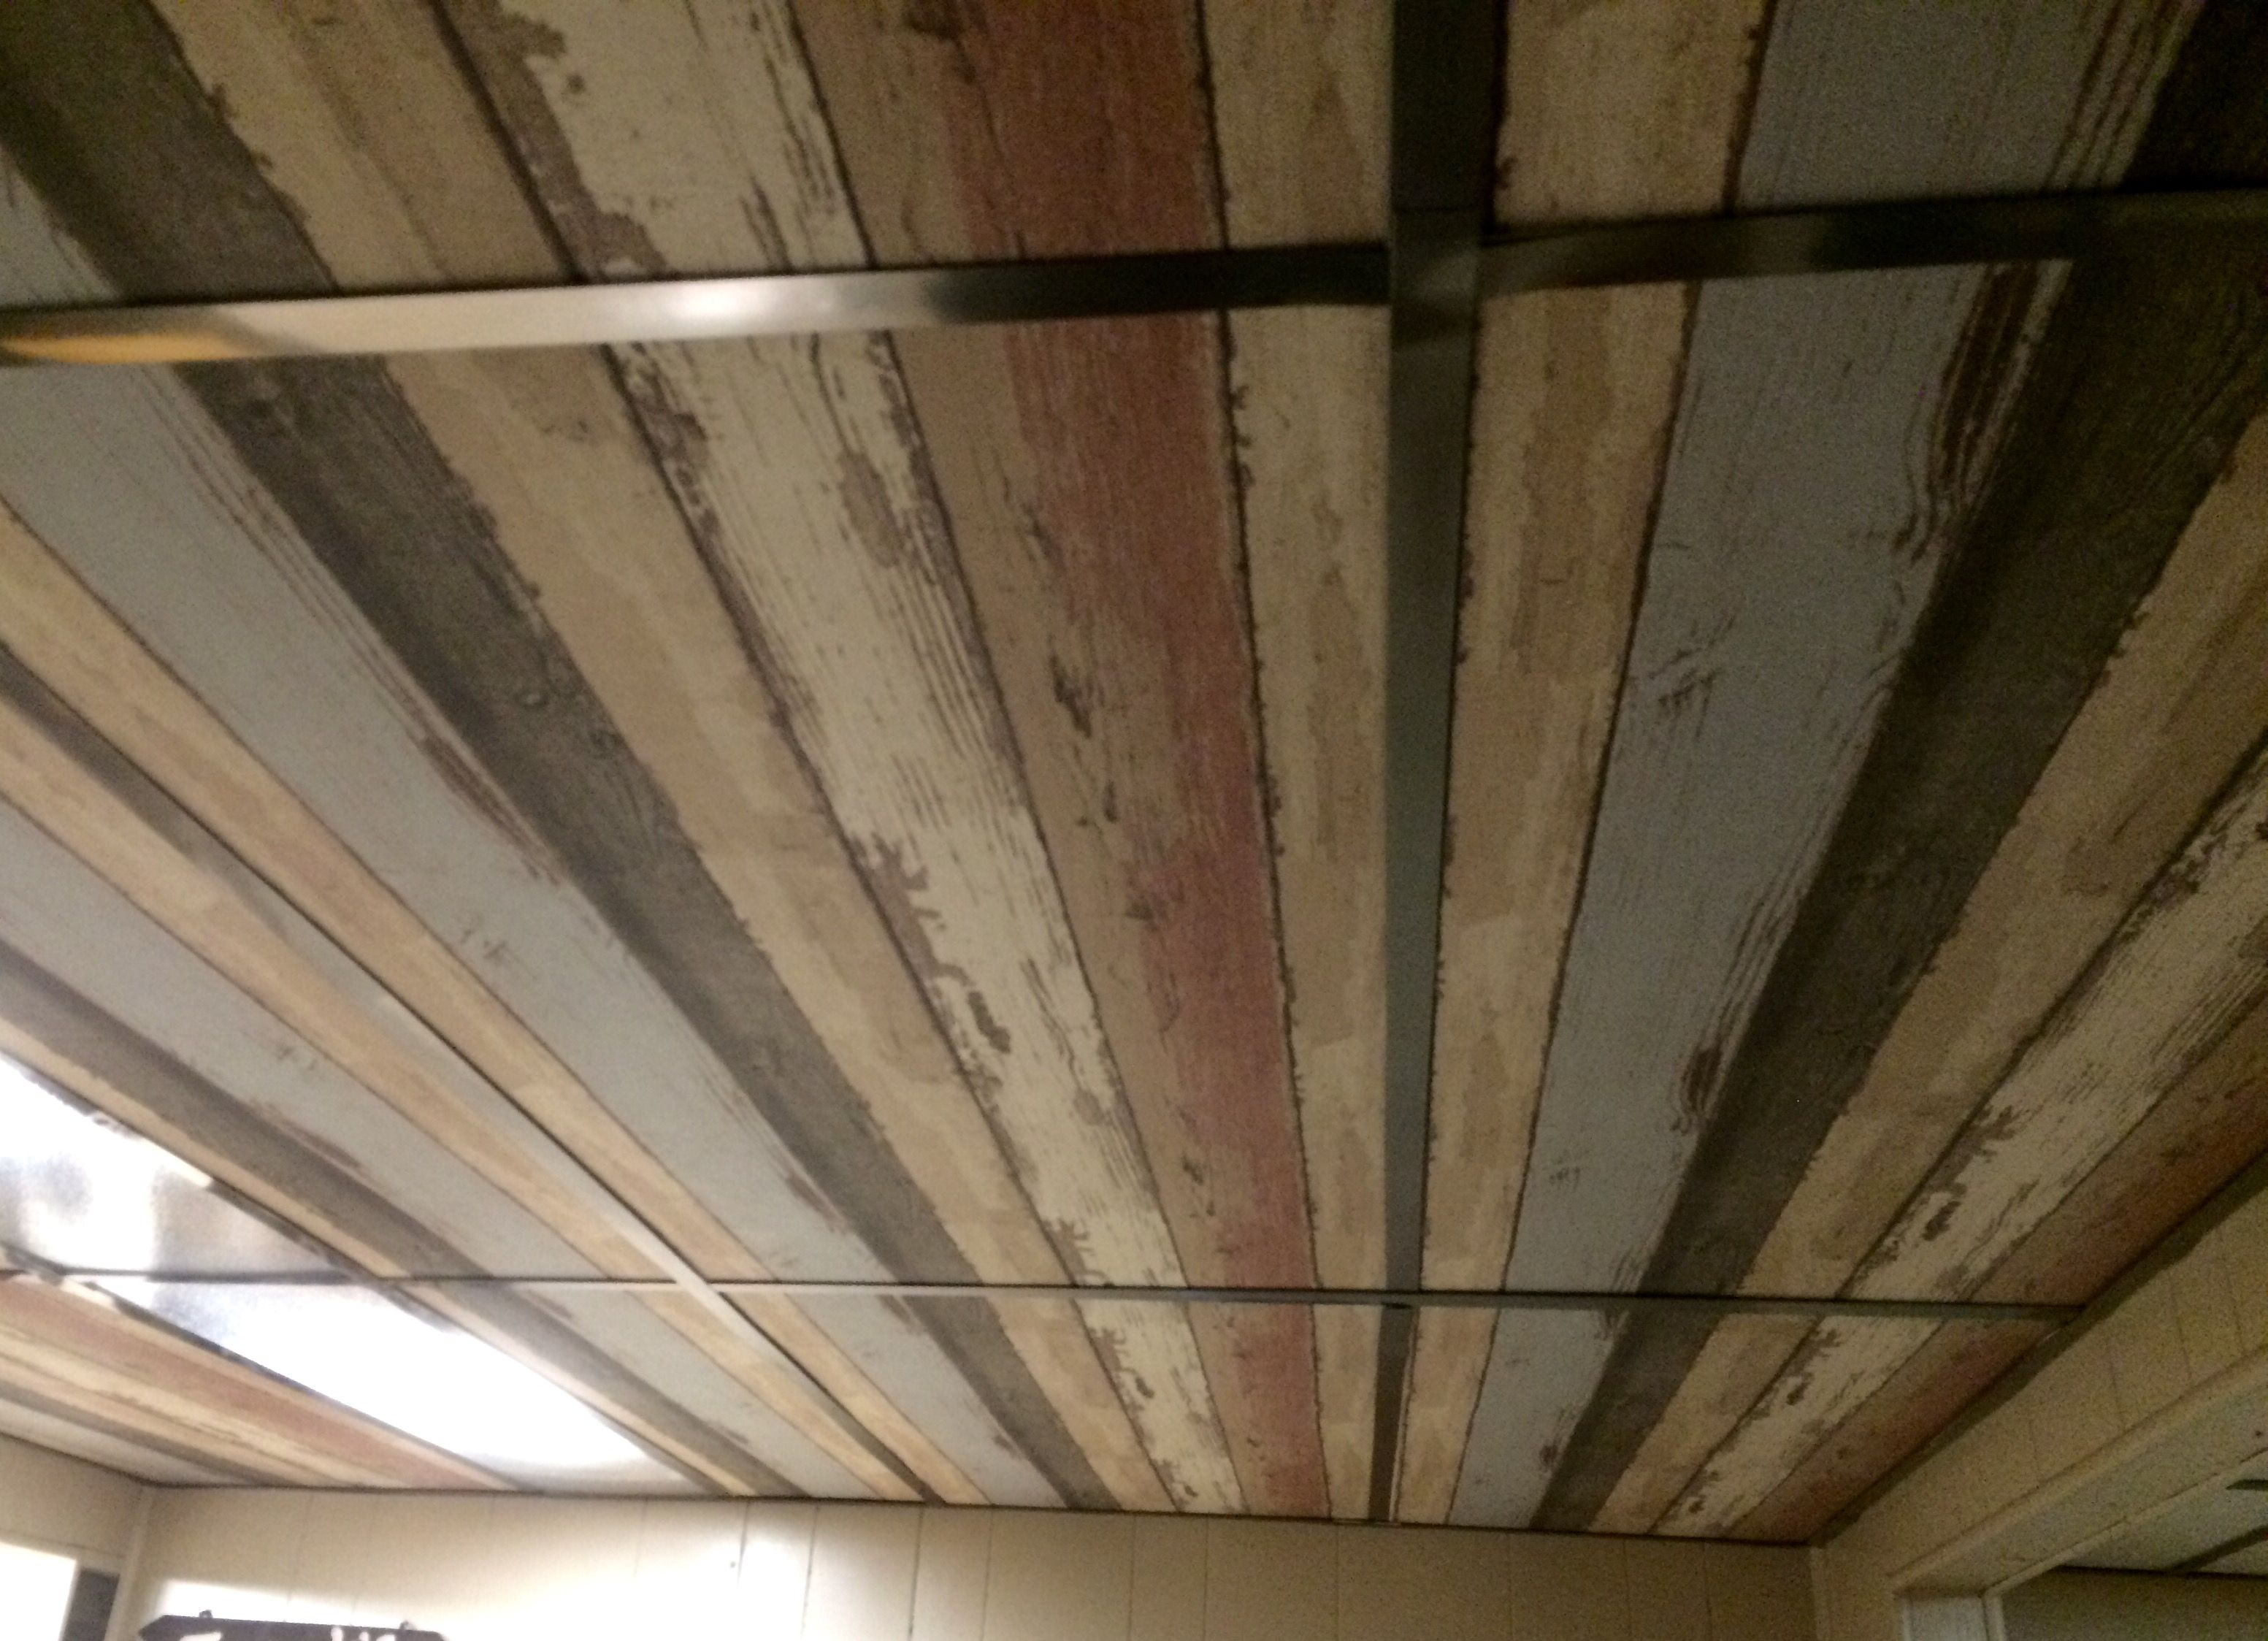 How to install a basement beadboard ceiling to replace a drop 20 stunning basement ceiling ideas are completely overrated drop ceiling tilesdropped dailygadgetfo Image collections